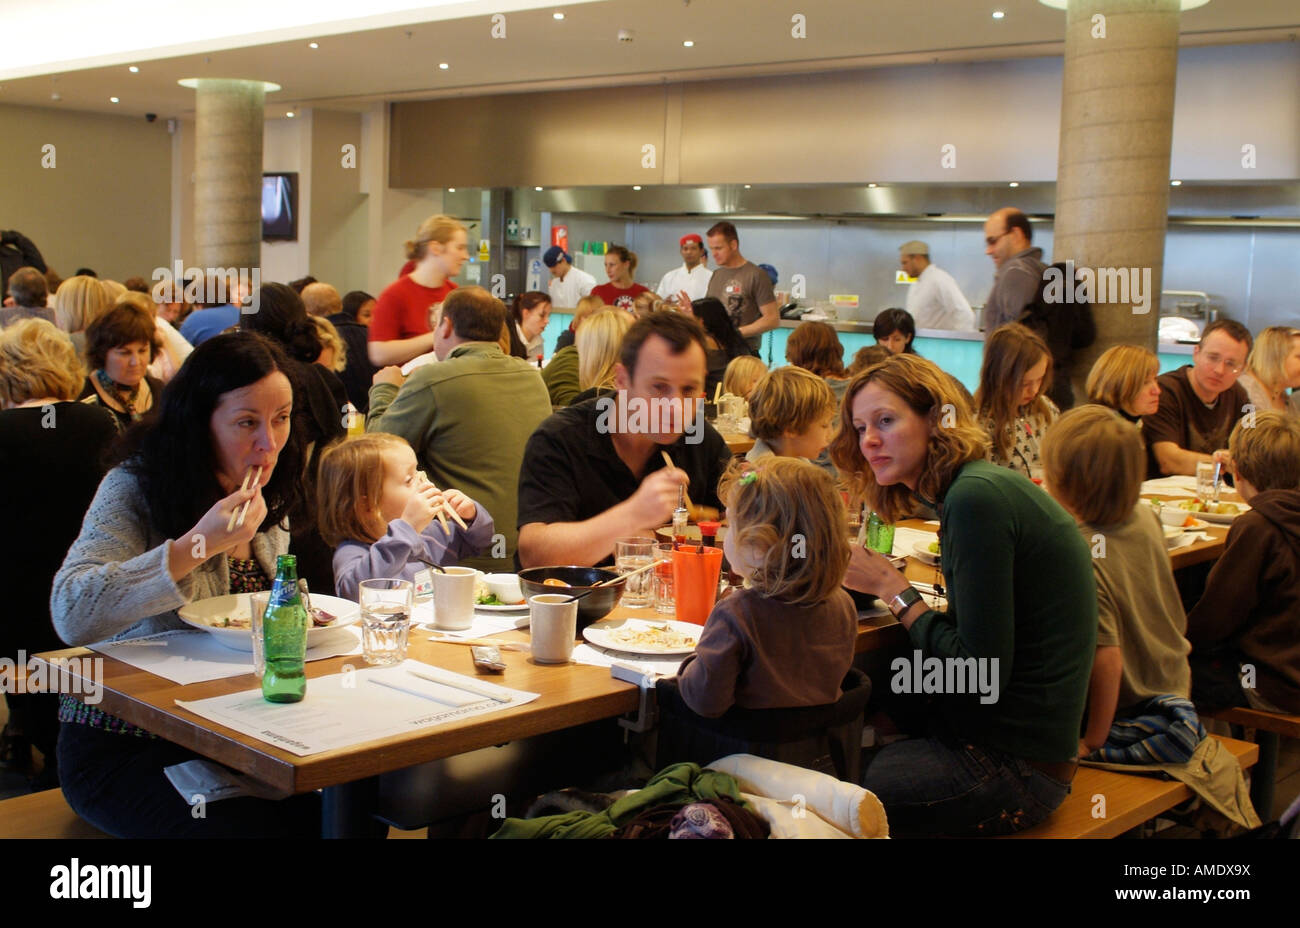 Crowded restaurant table - Crowded Restaurant With Customers Eating At A Wagamama Noodle Bar Establishment Stock Image